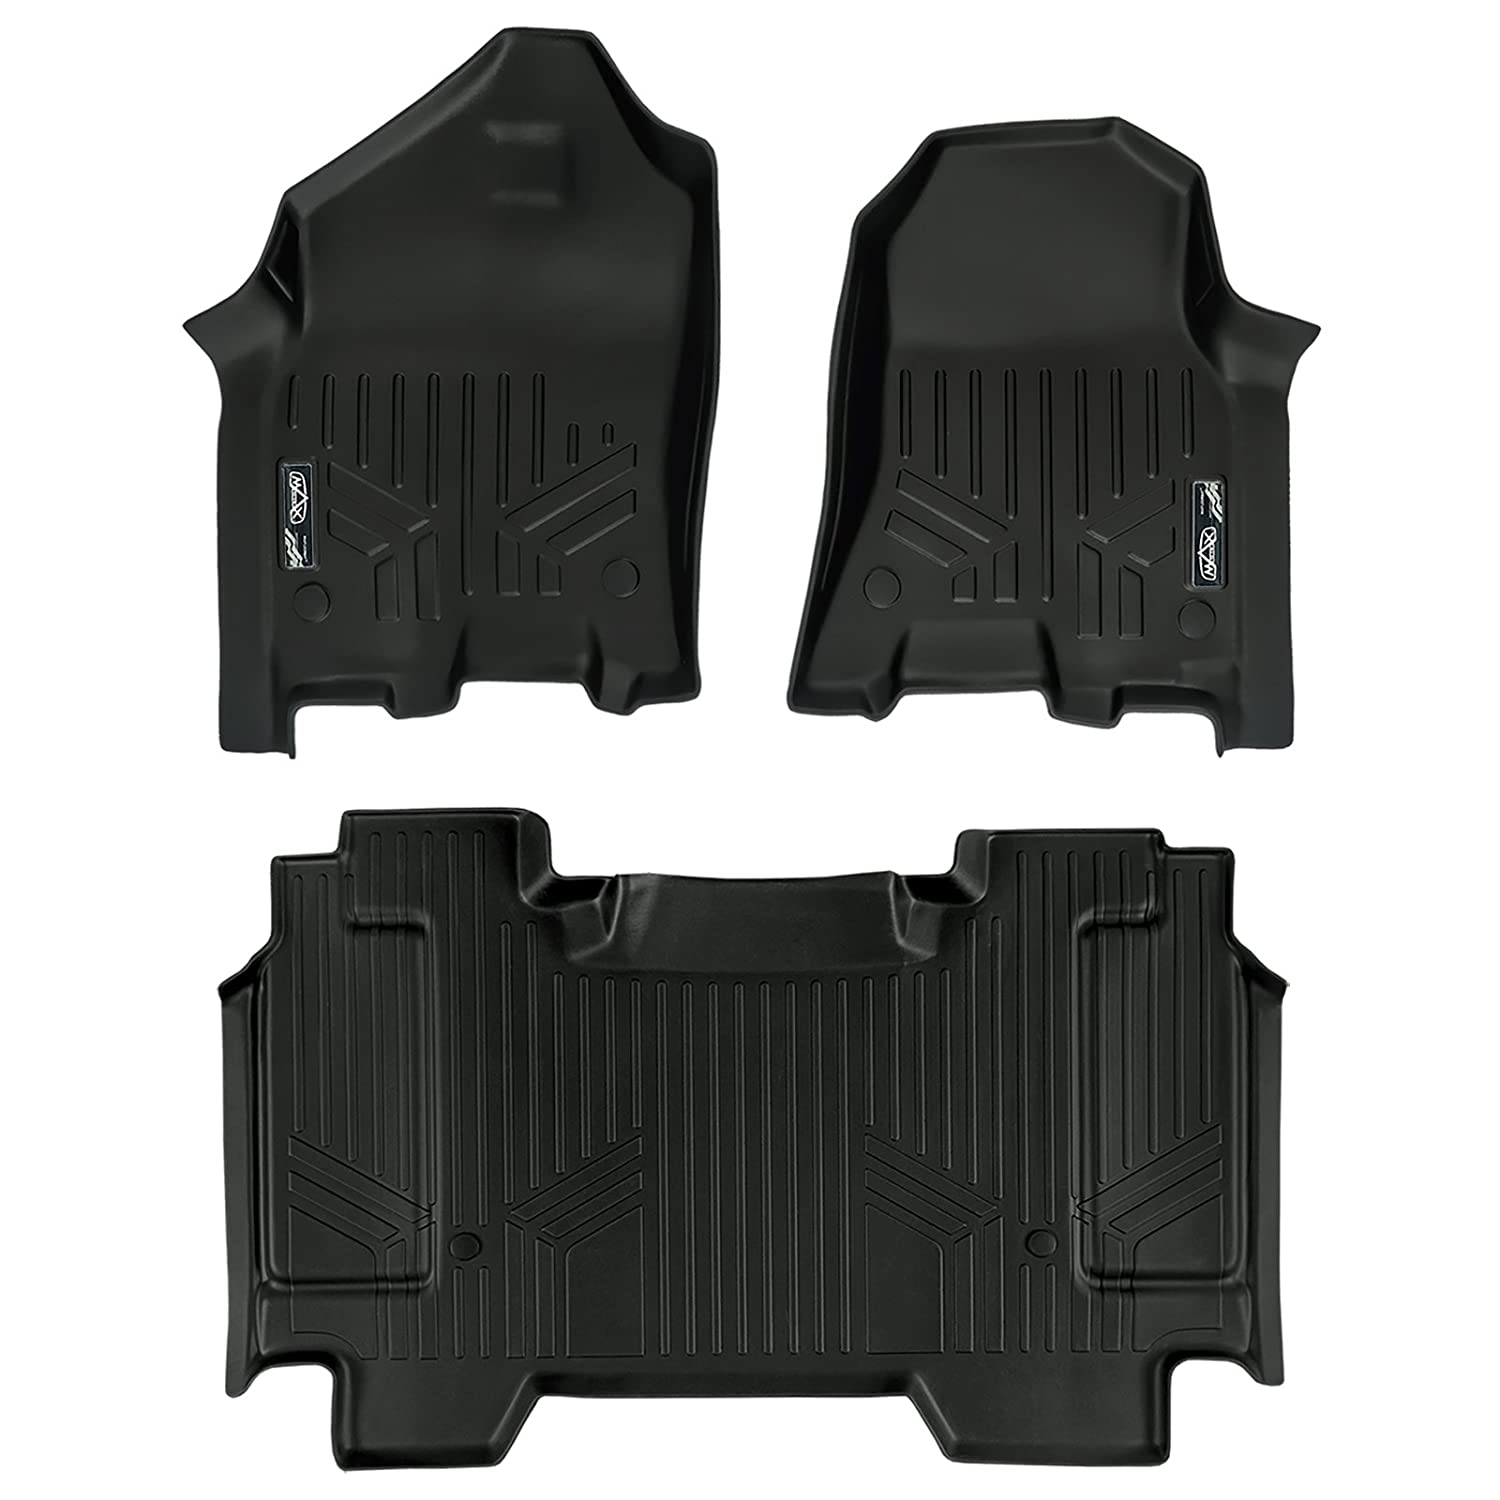 SMARTLINER Floor Mats 2 Row Liner Set Black for 2019 Ram 1500 Crew Cab with 1st Row Captain or Bench Seats MAXLINER A0369/B0369